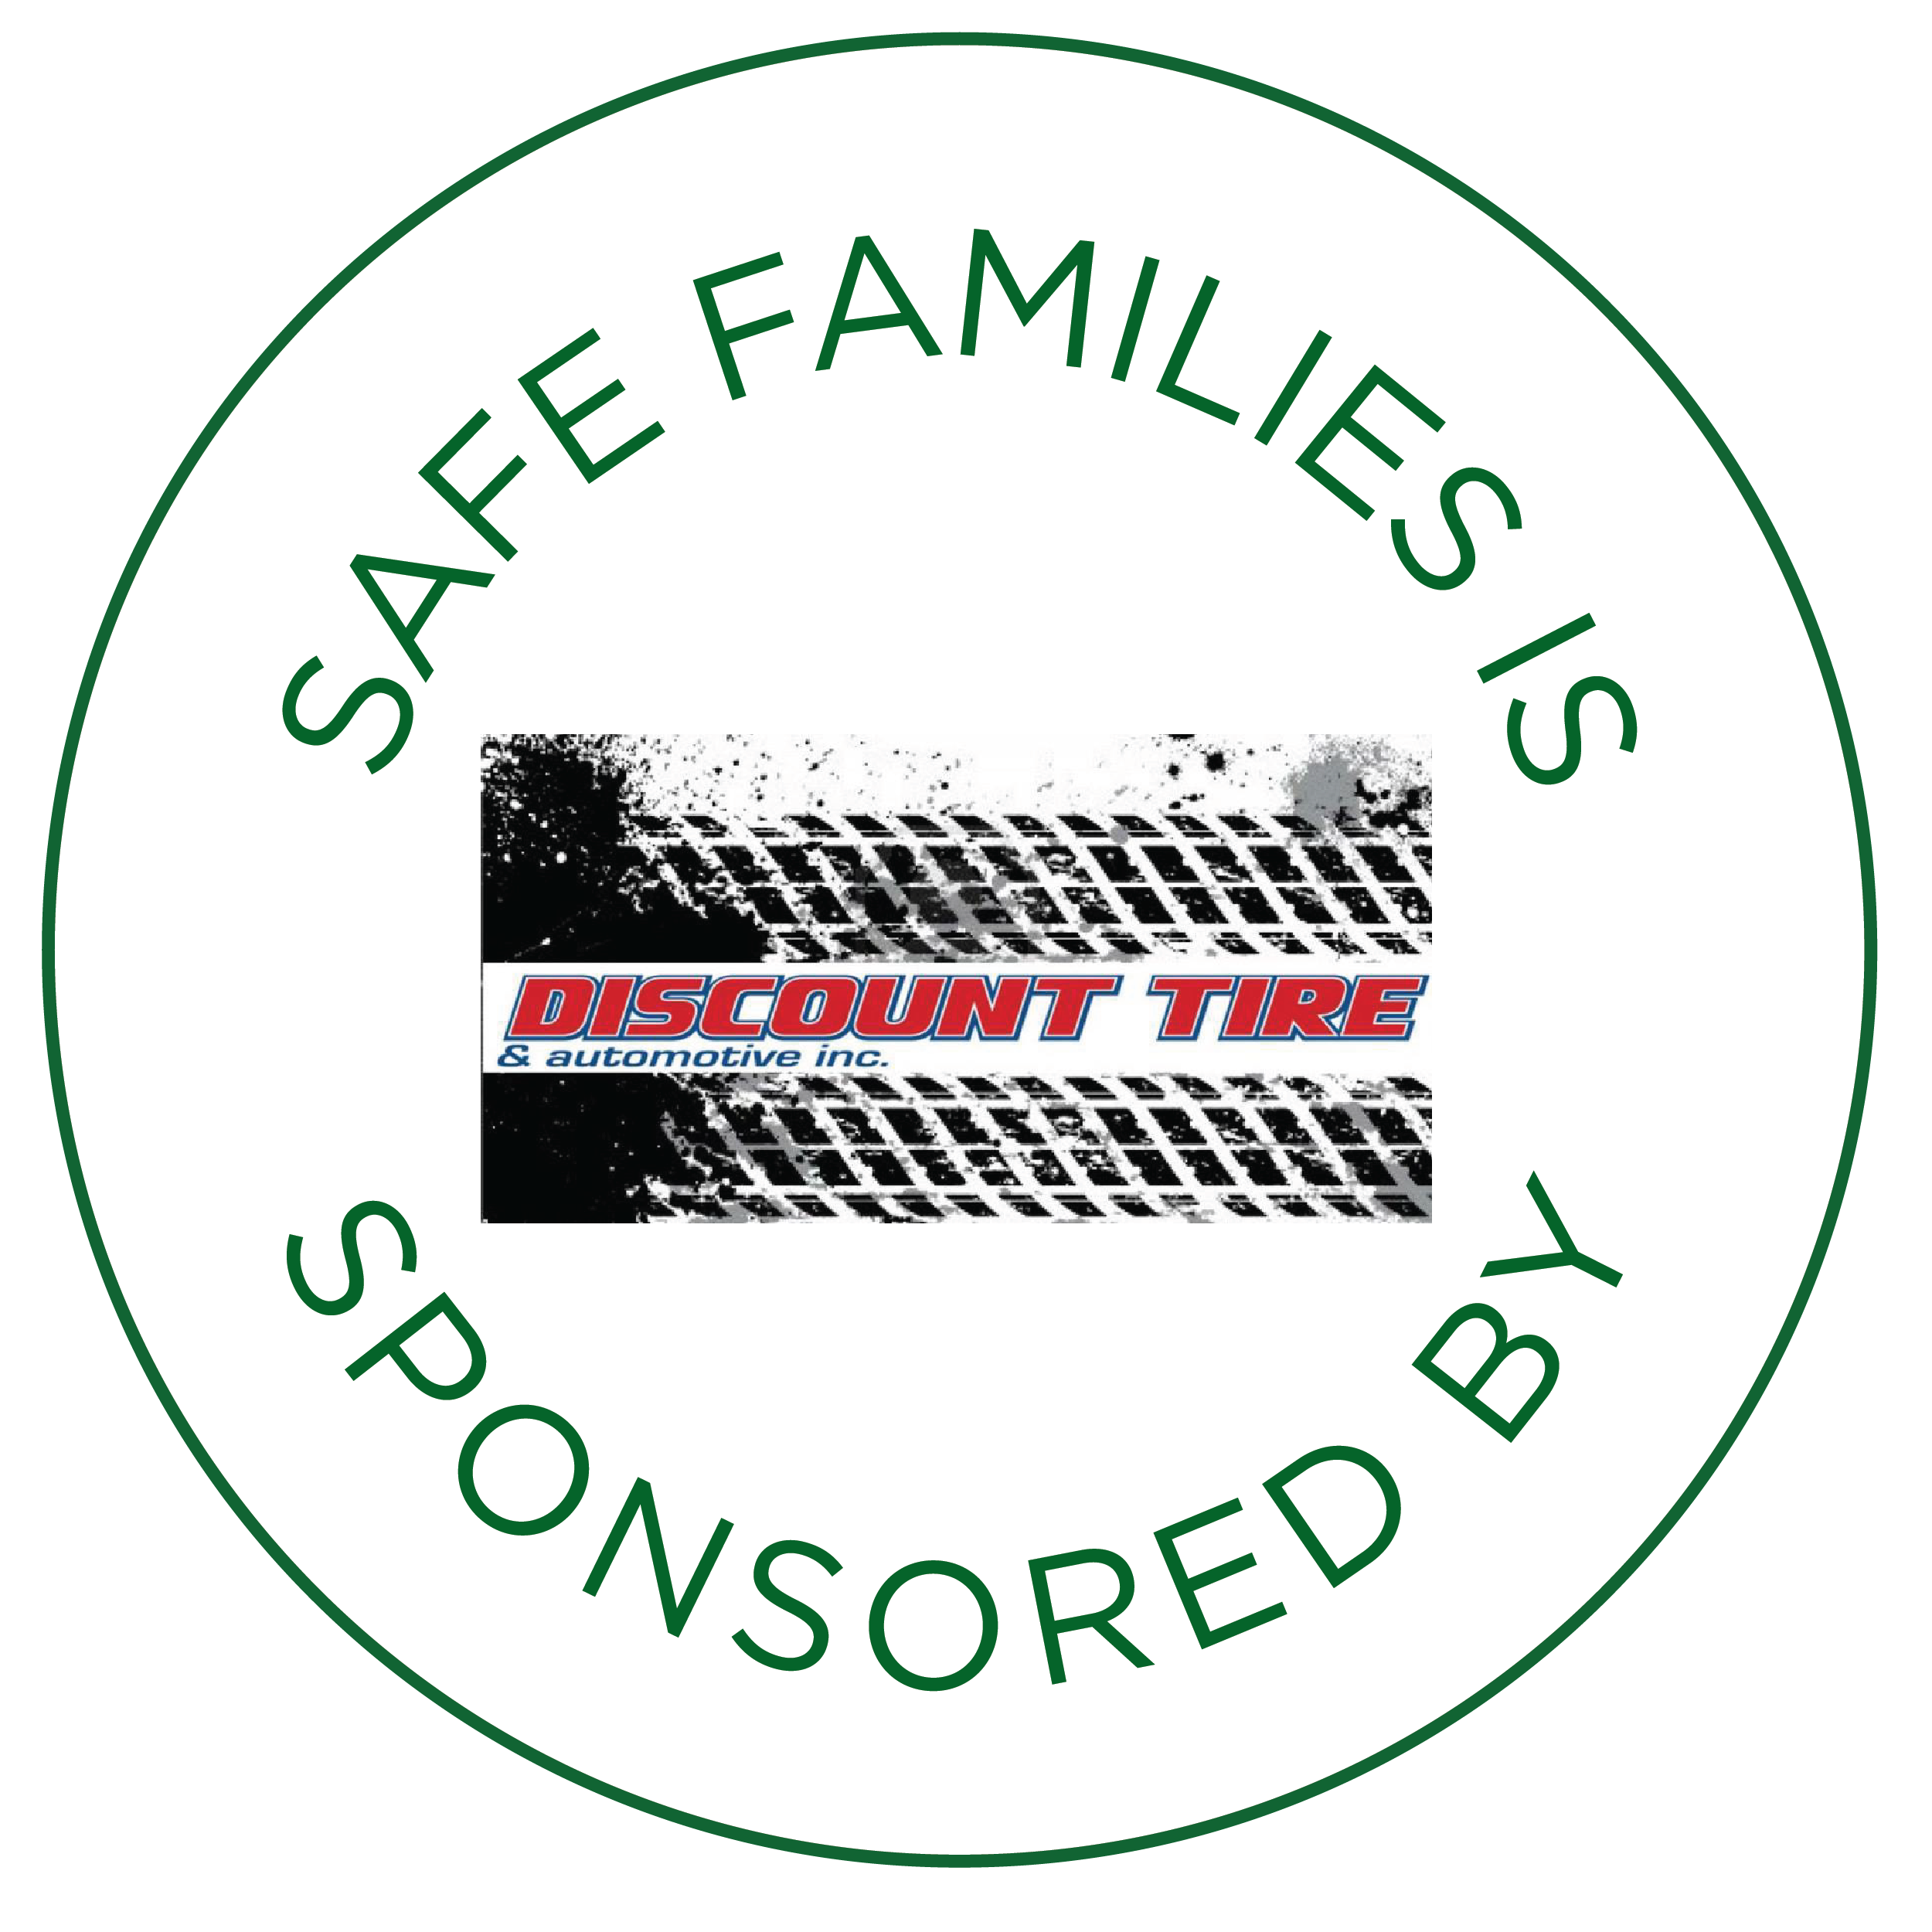 property crime prevention how to reduce the risk cache valley safe families logo